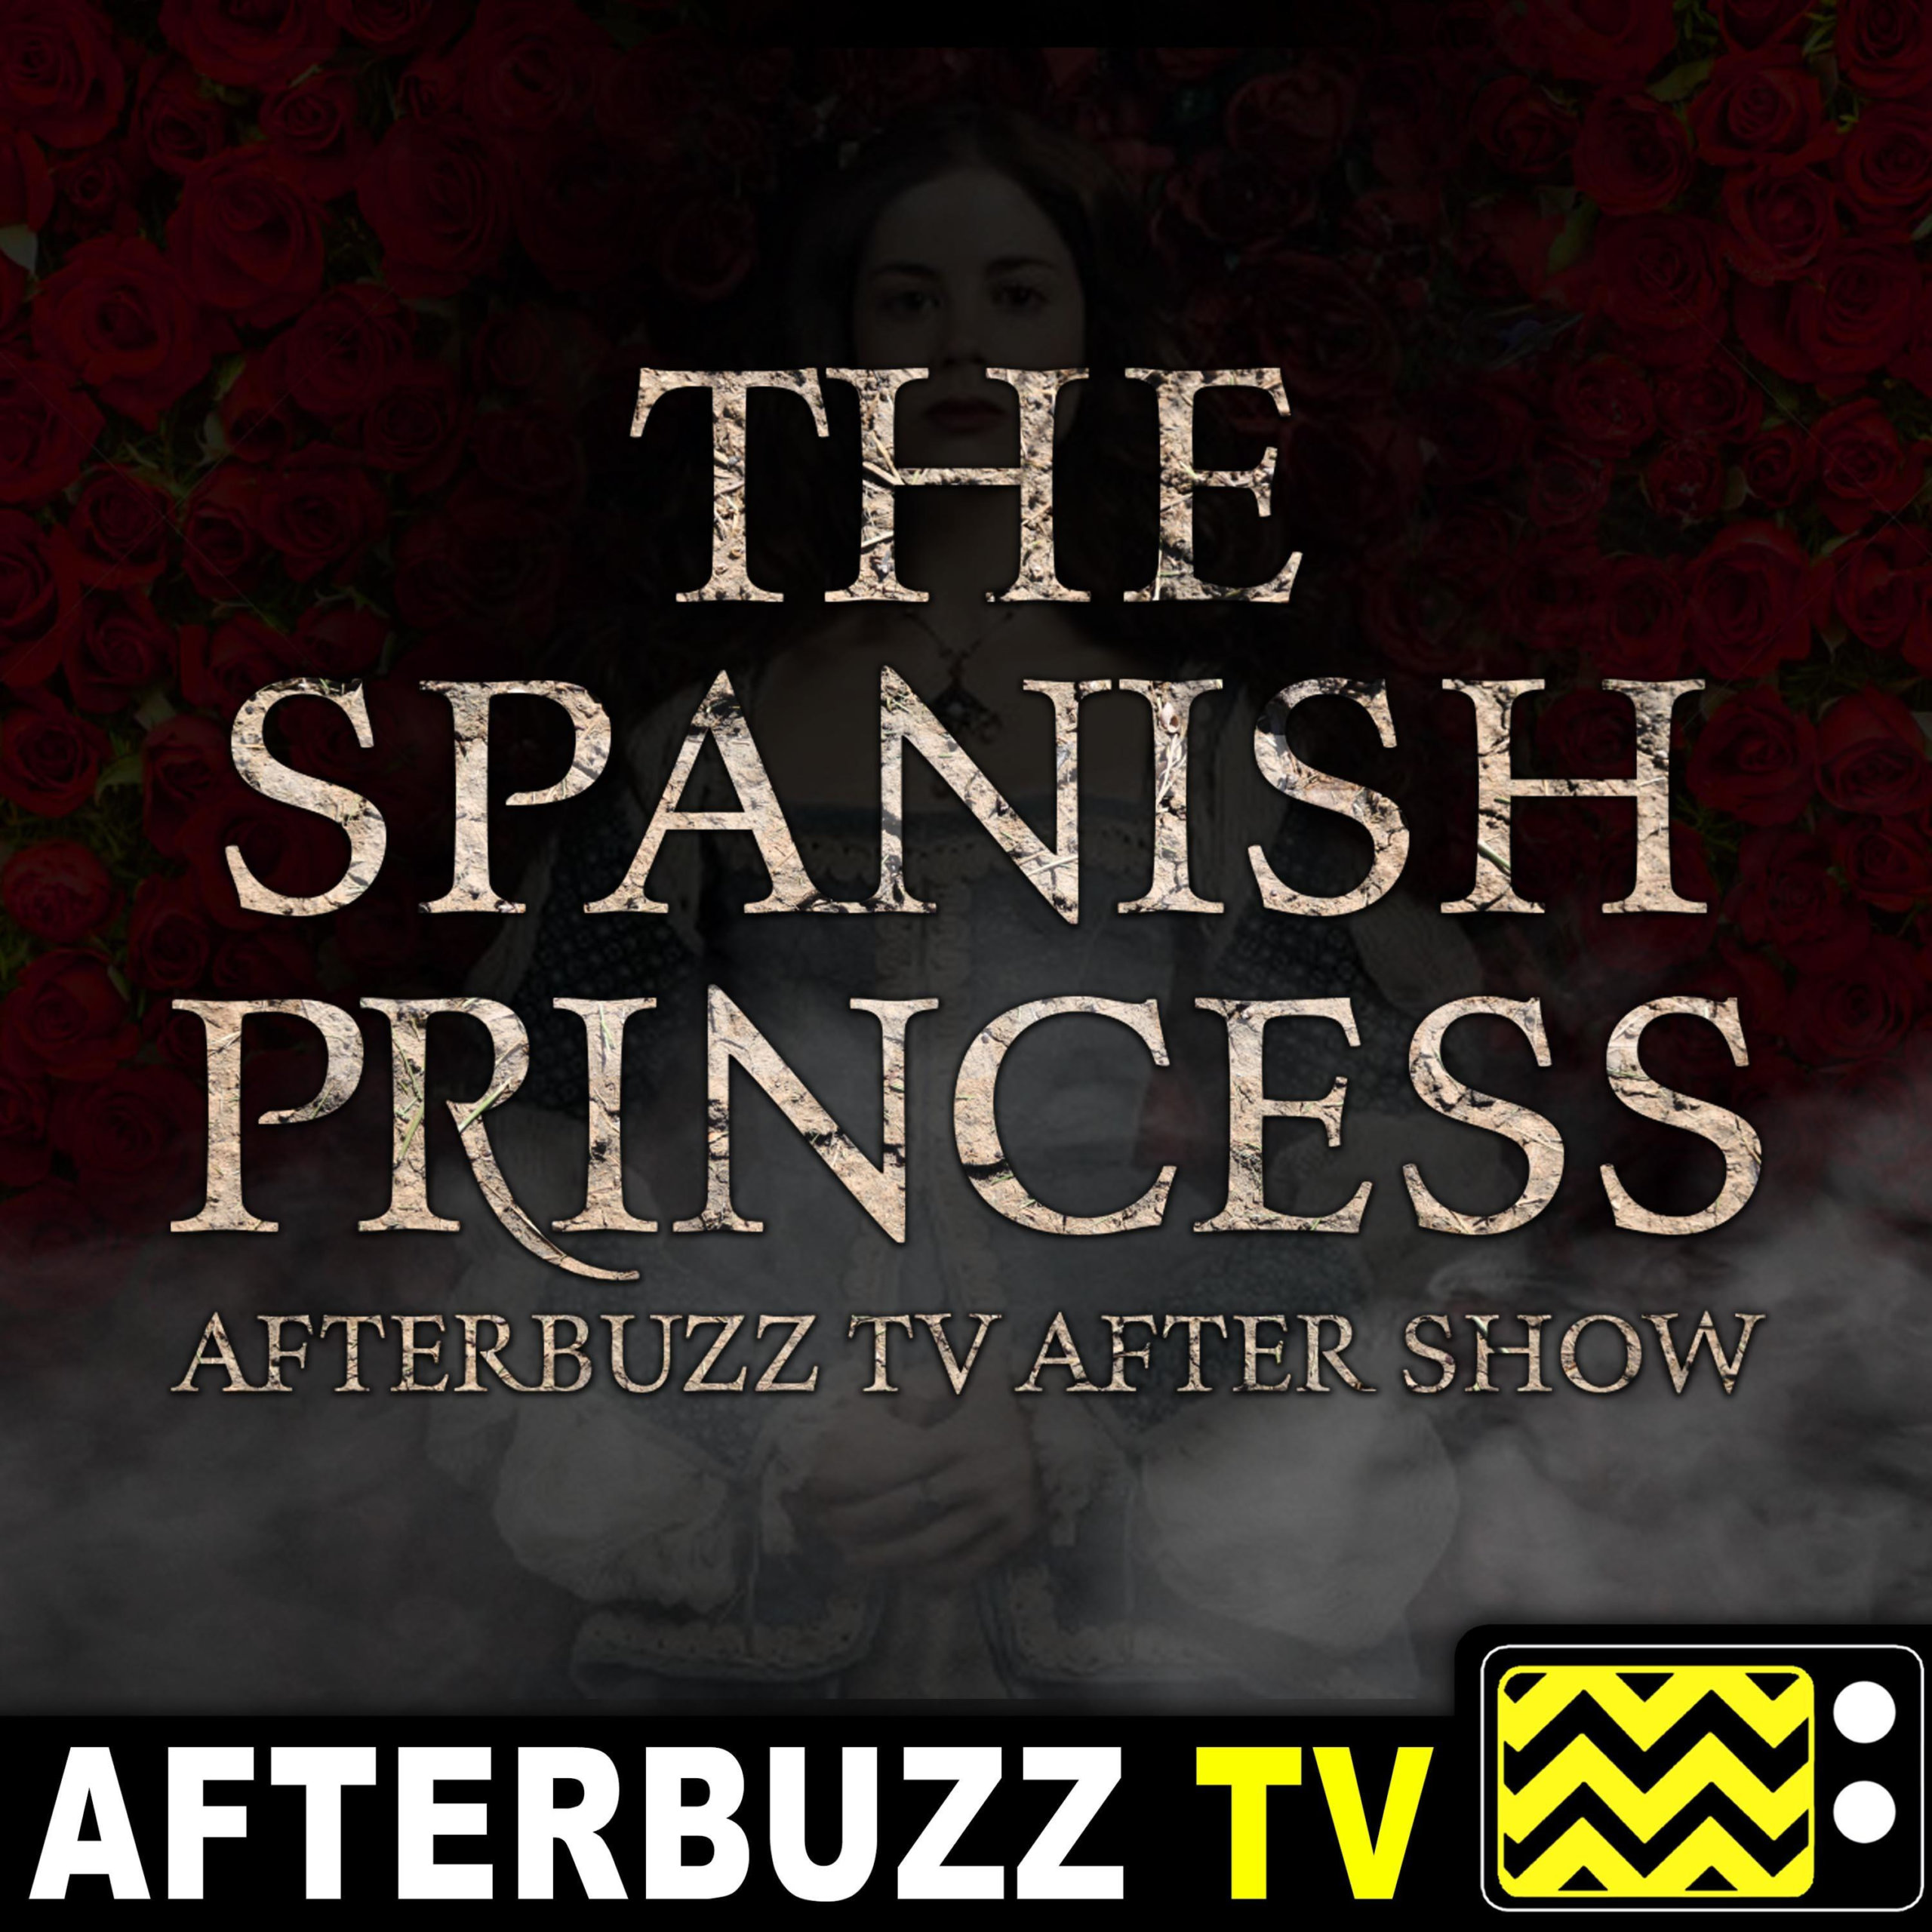 The Spanish Princess Podcast